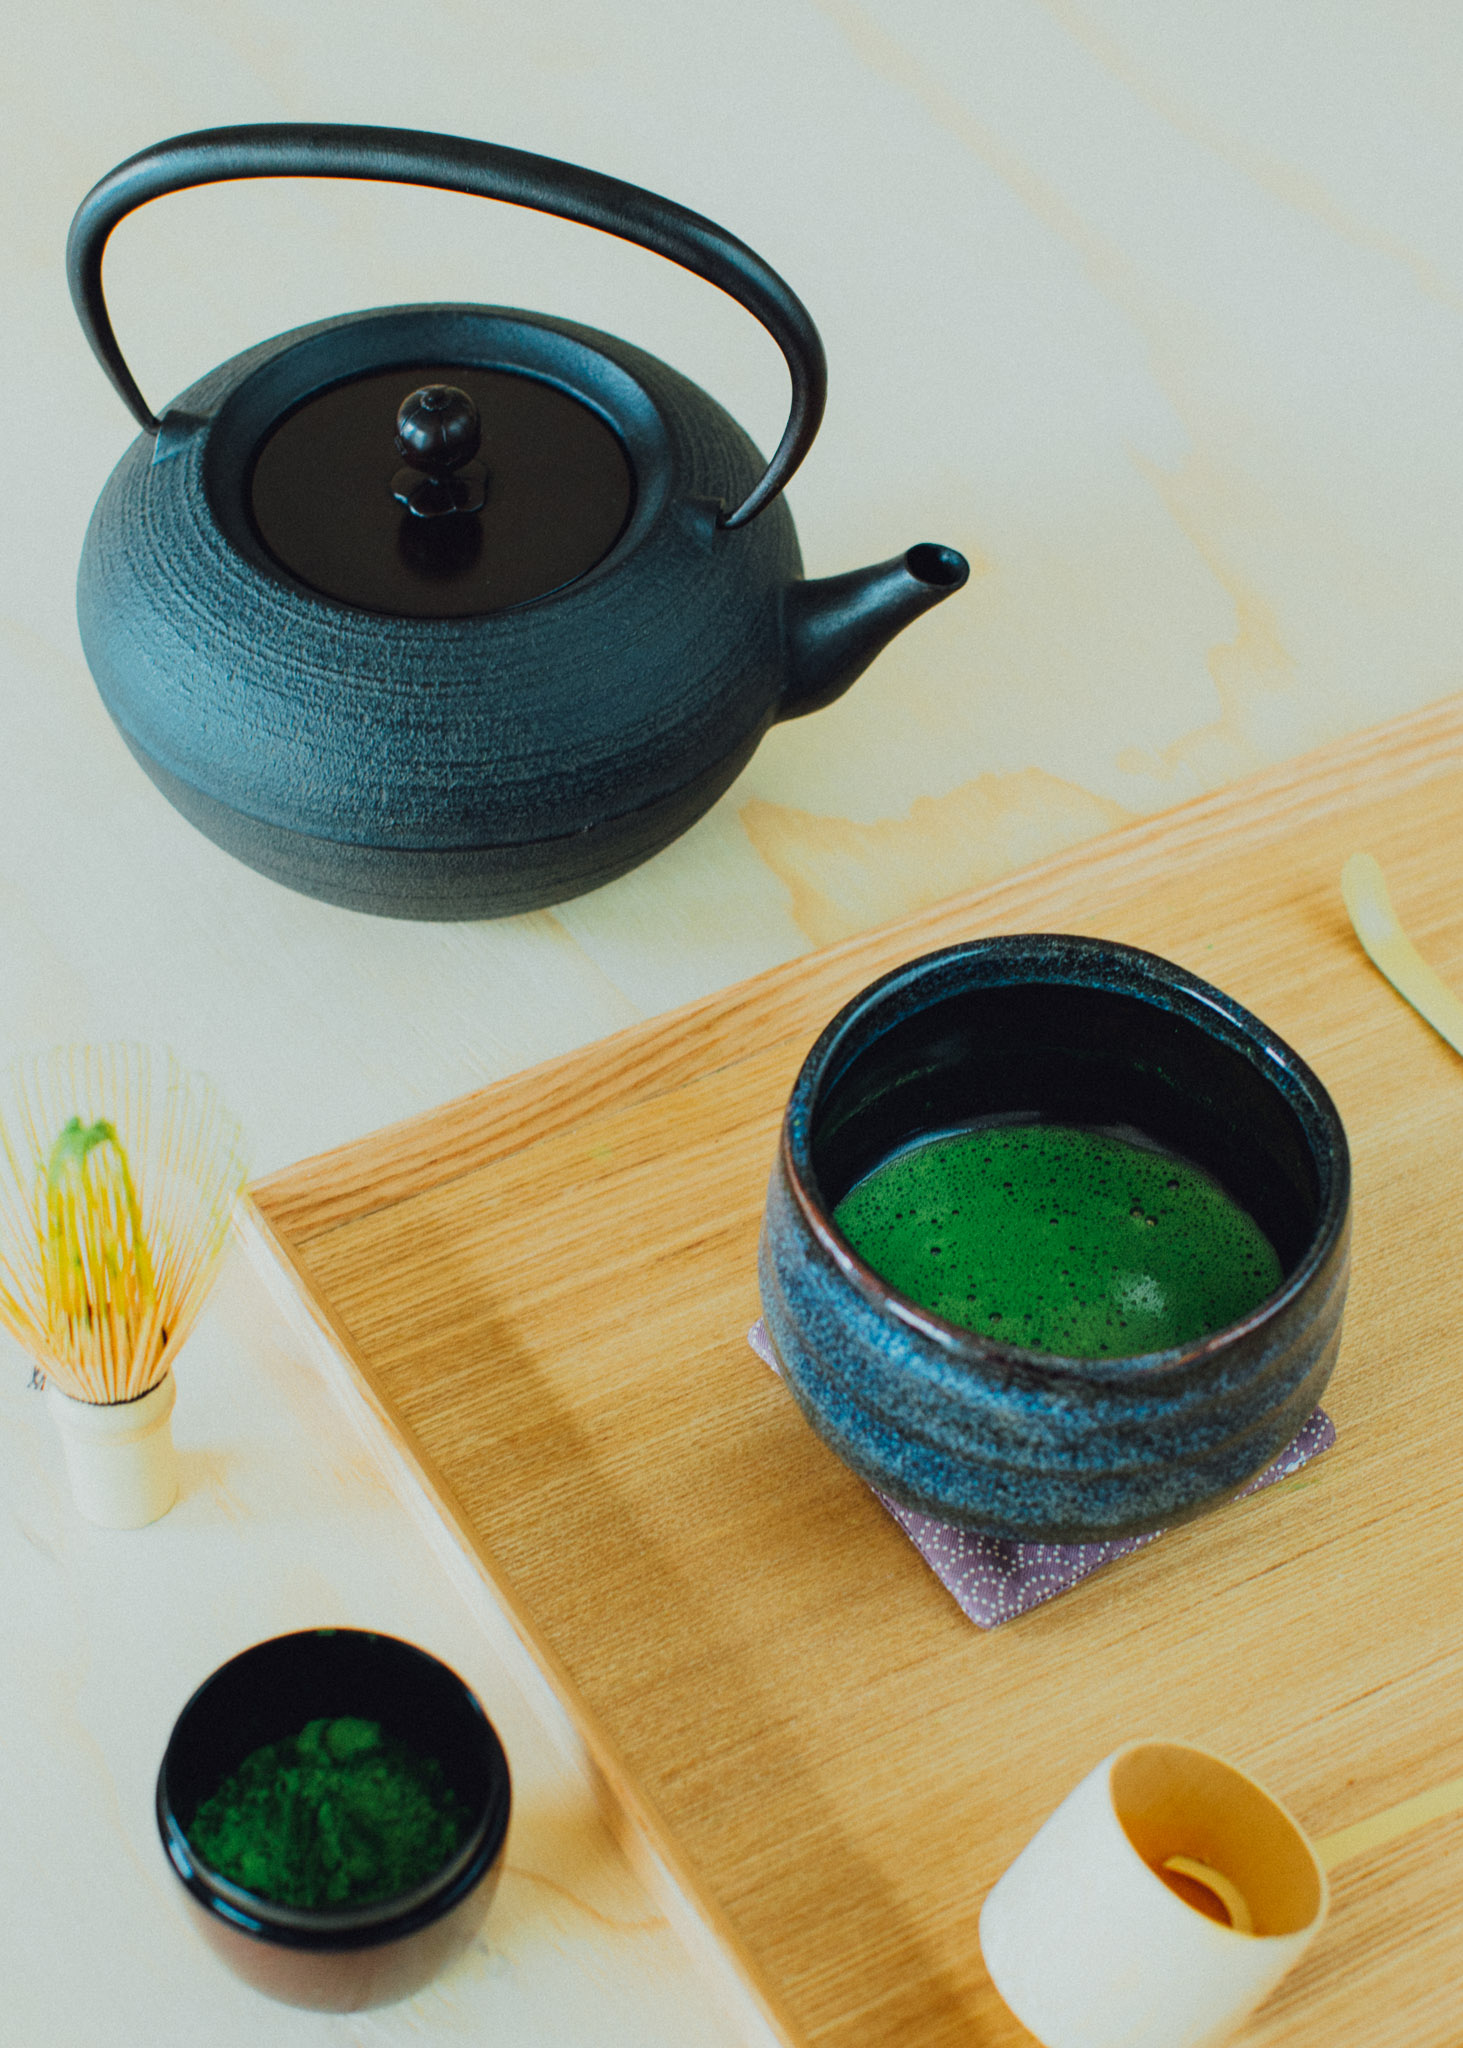 chotto-melbourne-food-photography-green-tea